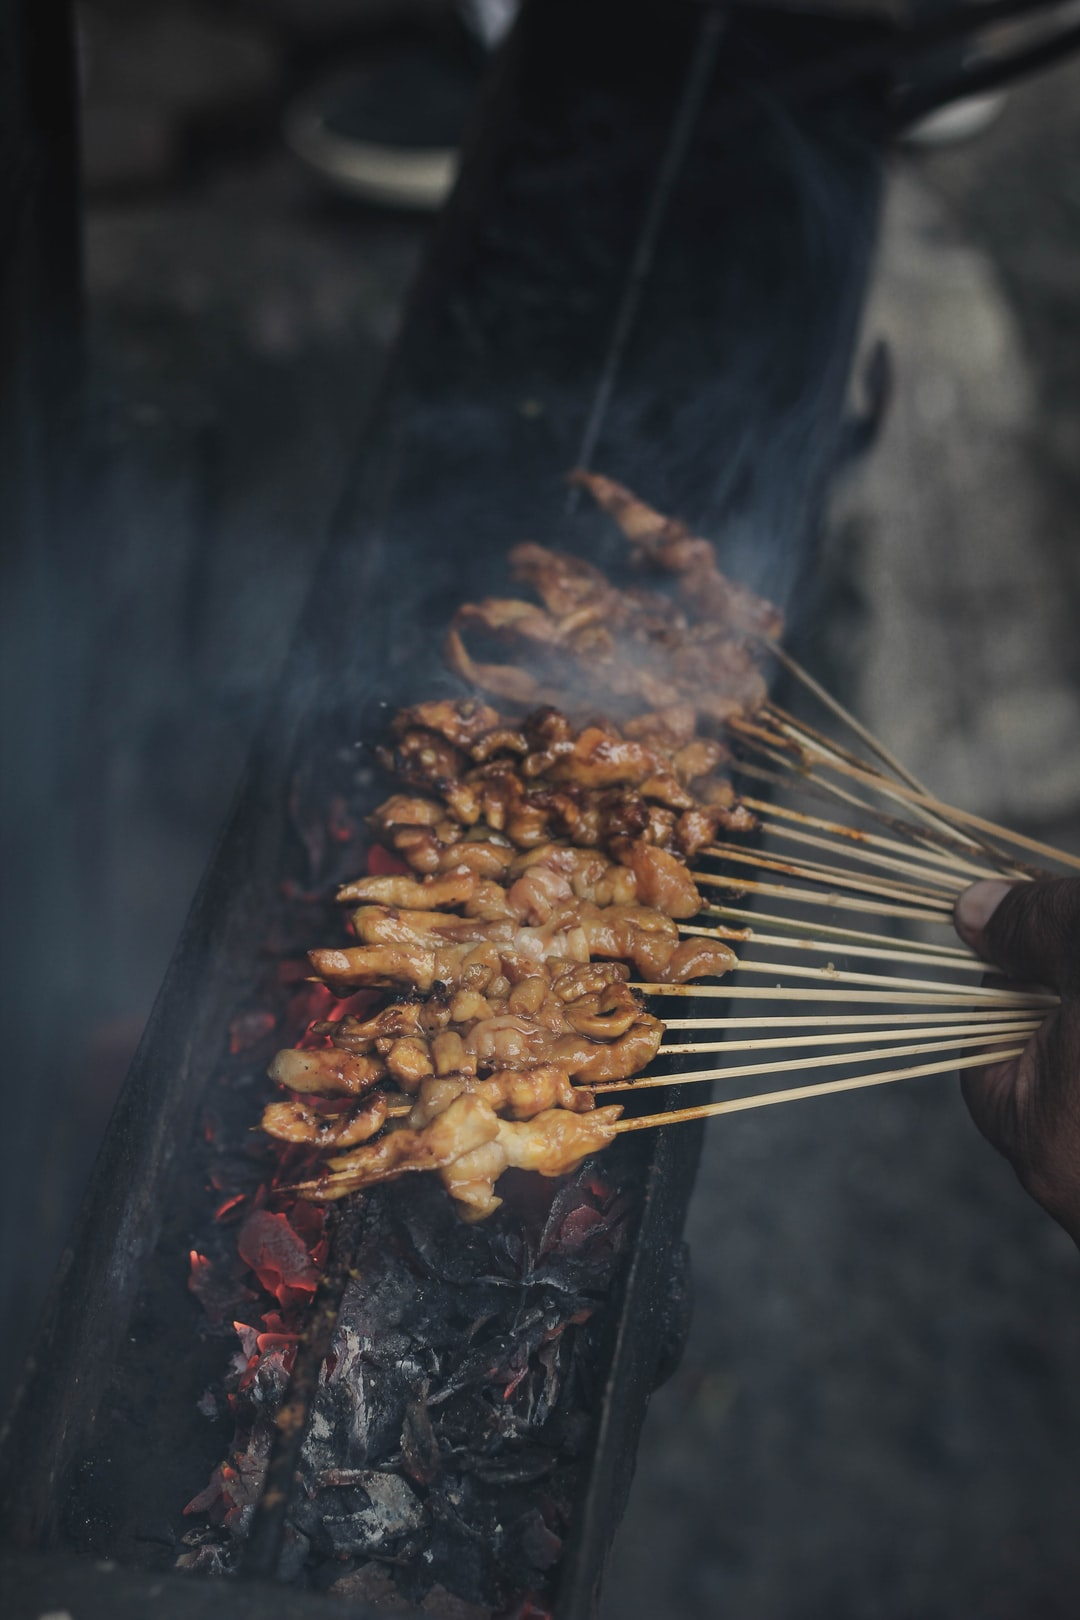 Madura Satay is very sweet and delicious. If you want to try this food c'mon go visit INDONESIA.